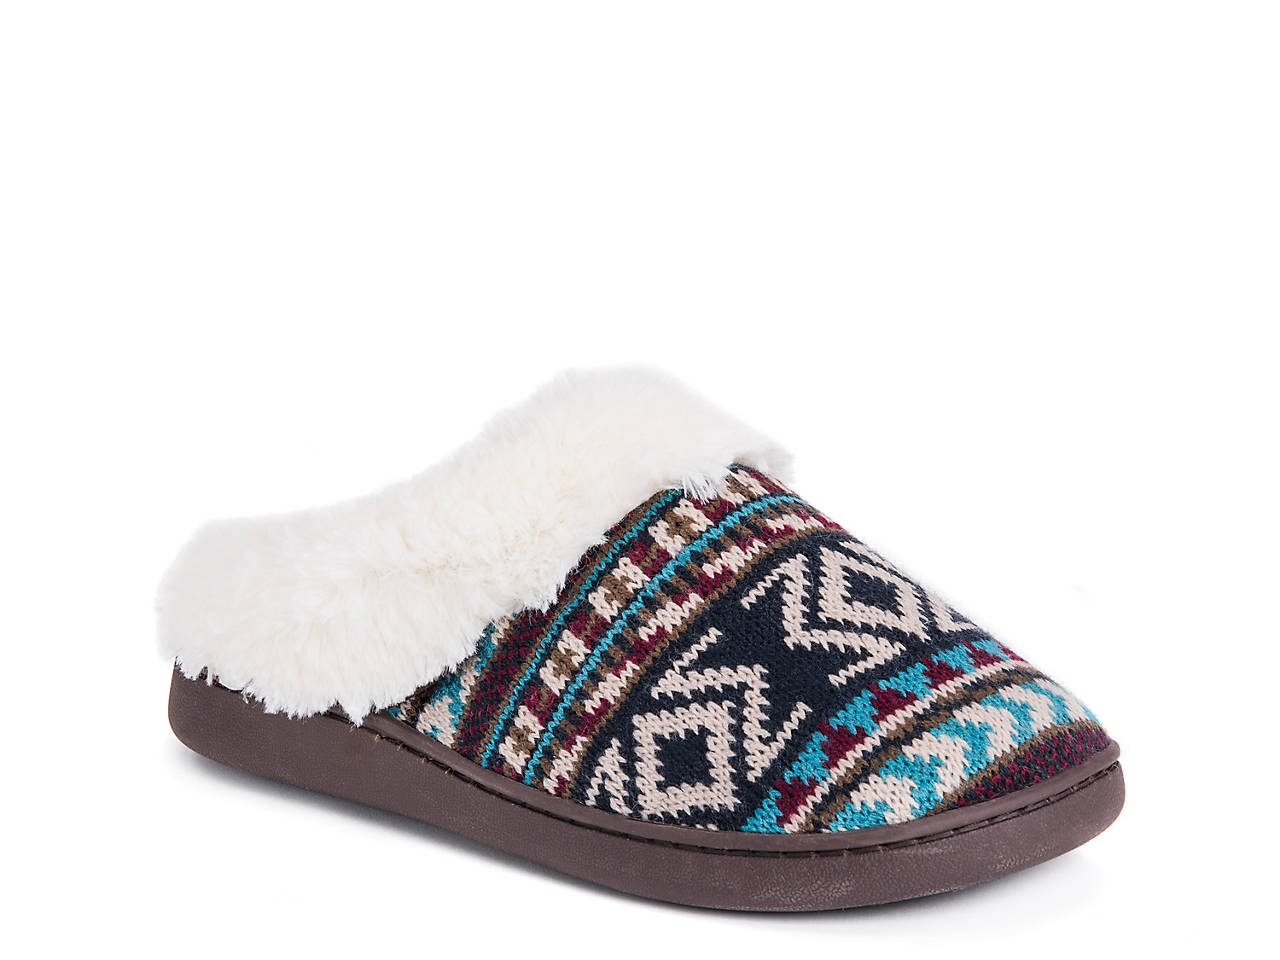 muk luks shoes boots sandals handbags and more dsw